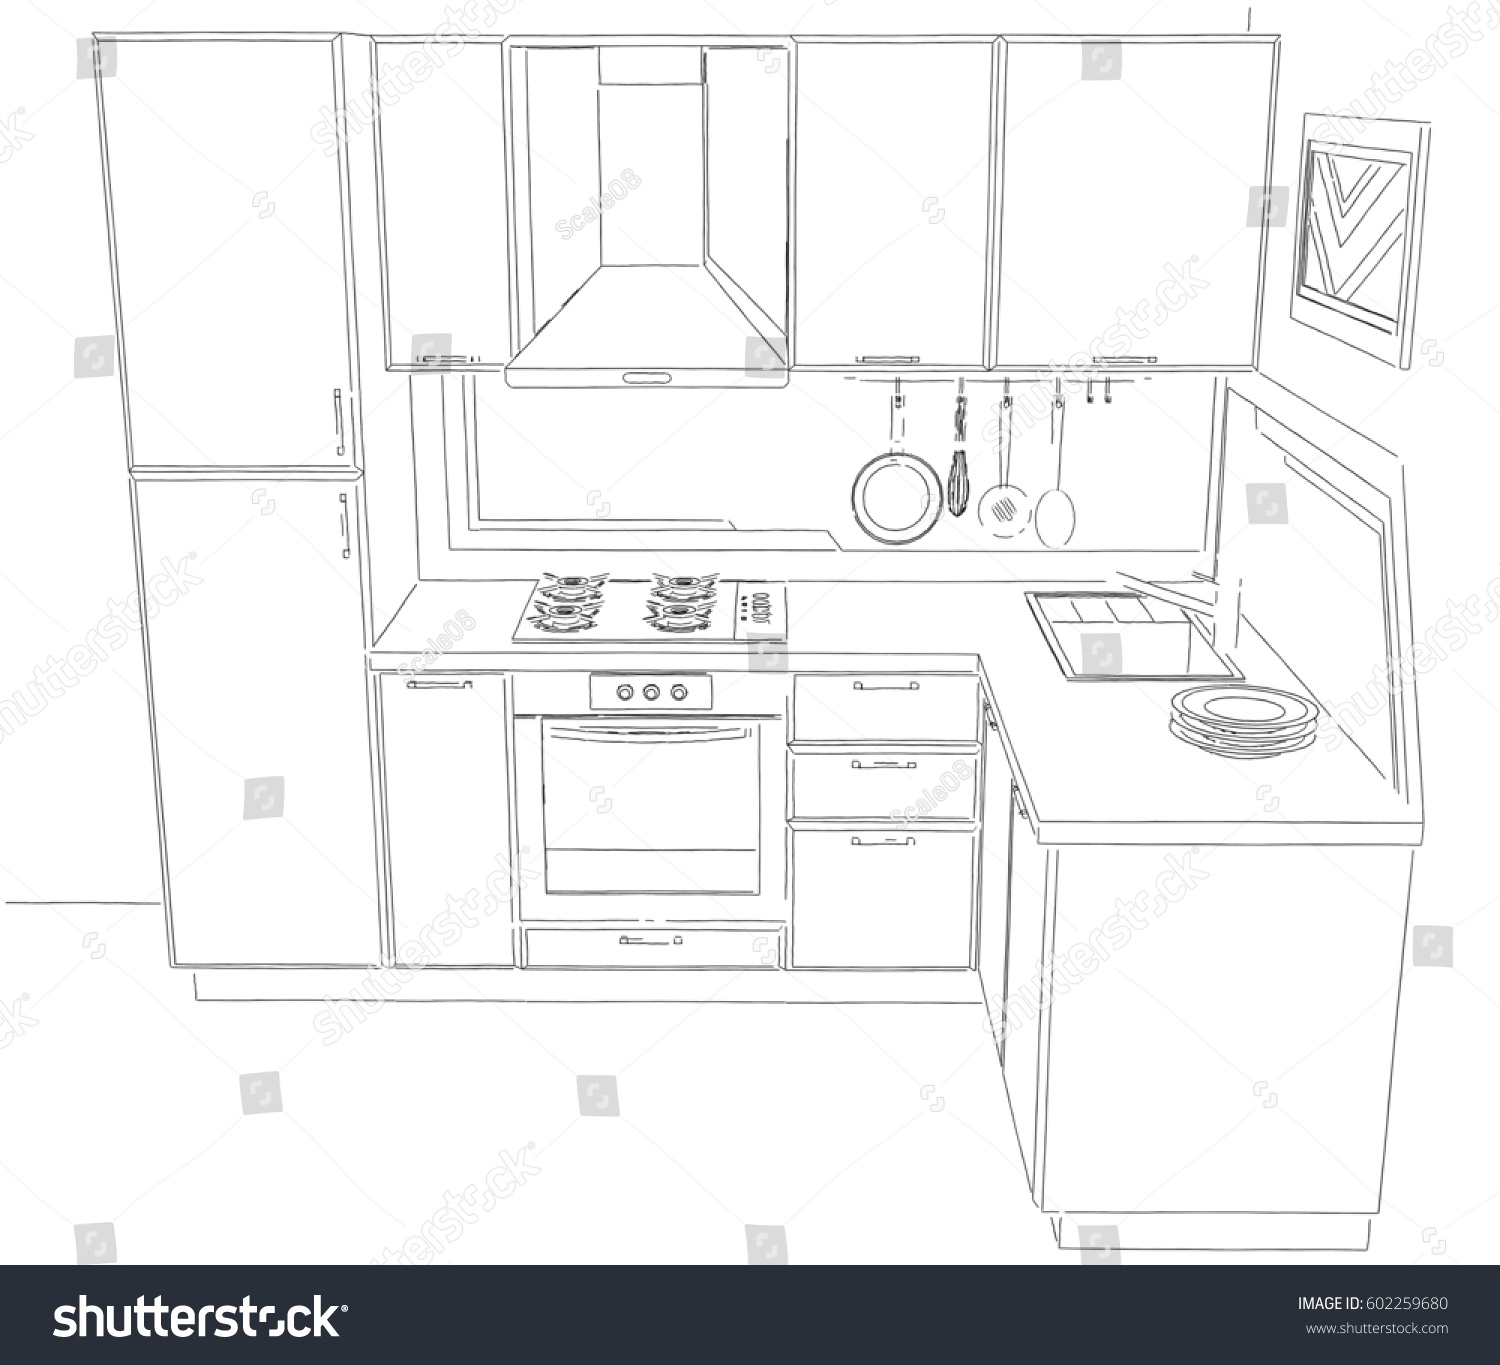 Modern corner kitchen interior drawing with built in fridge top perspective view